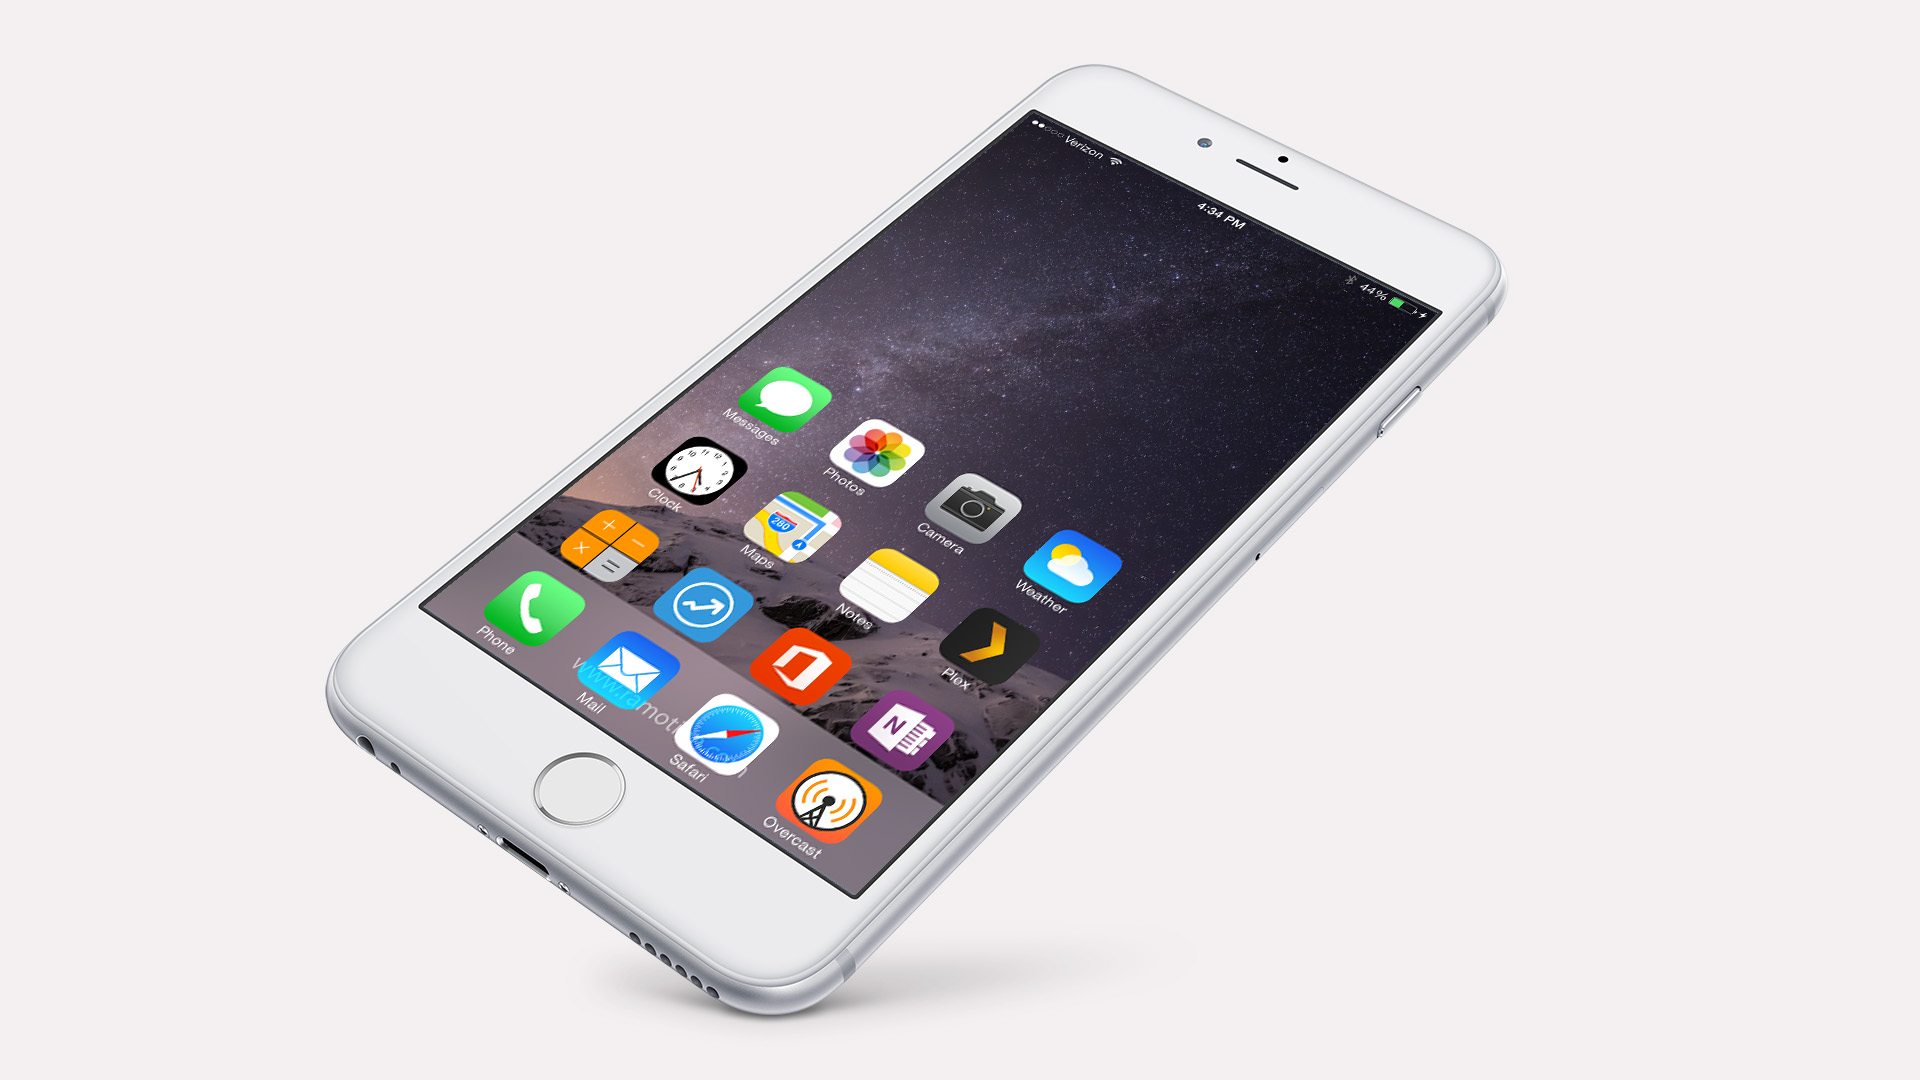 How to change iPhone 6 reachability background colorThe iBulletin 1920x1080